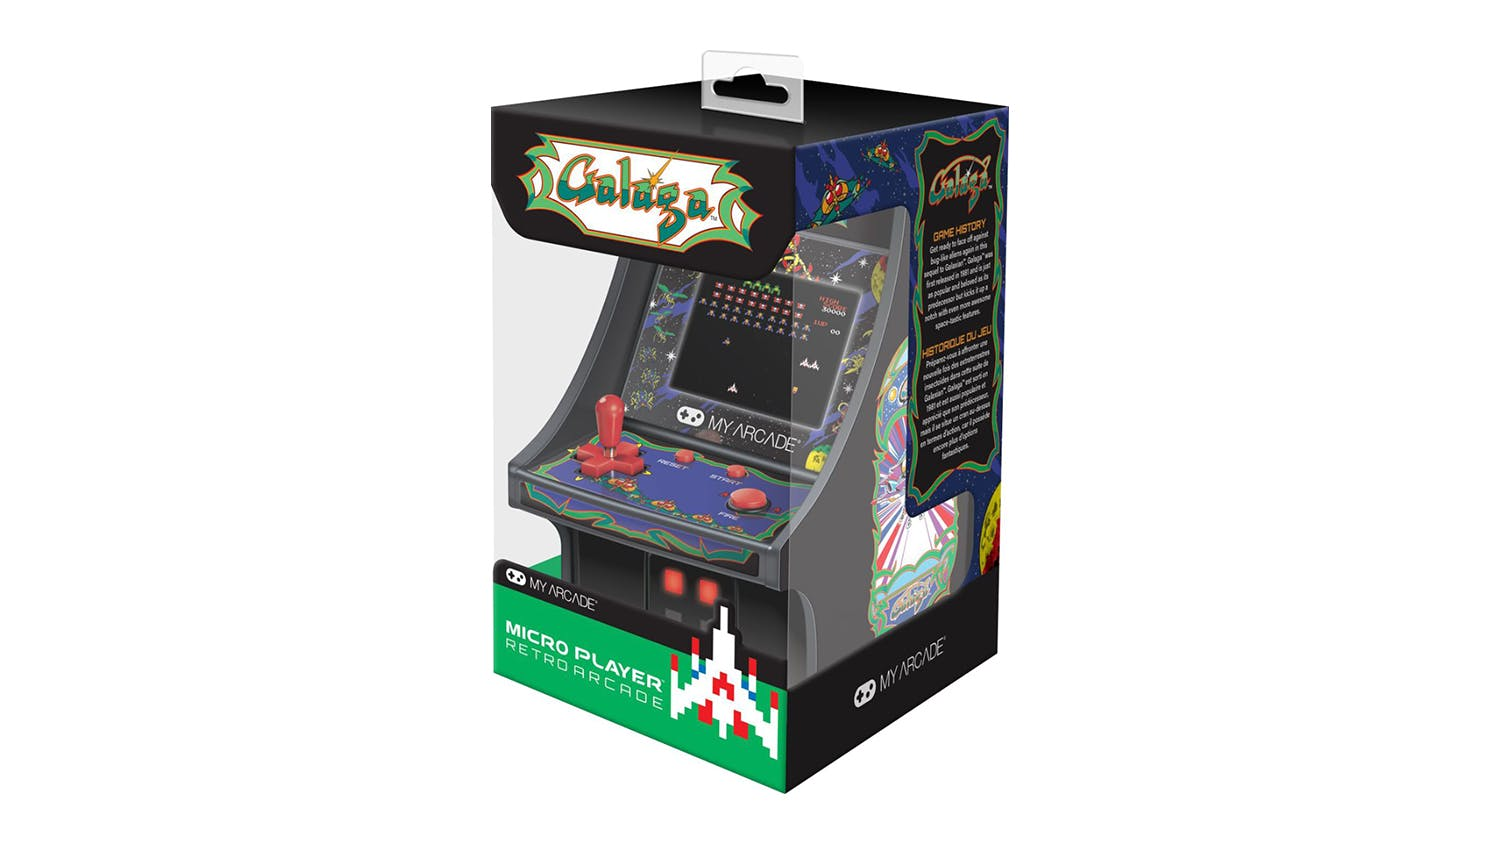 My Arcade Micro Player - Retro Galaga